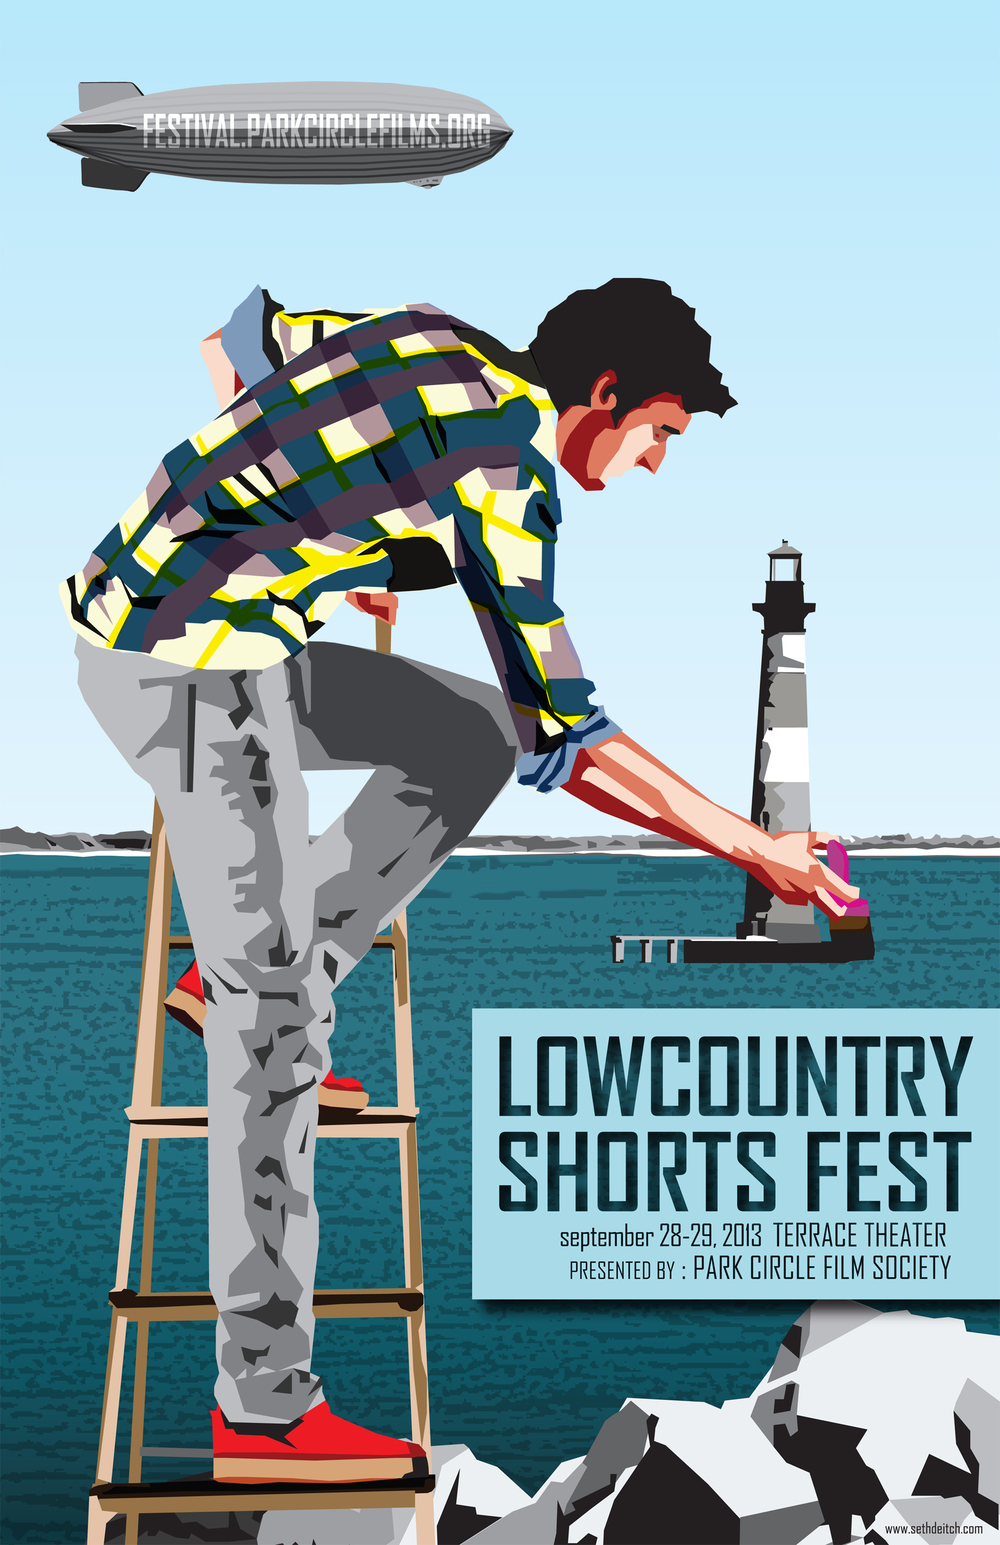 Lowcountry Shorts Fest